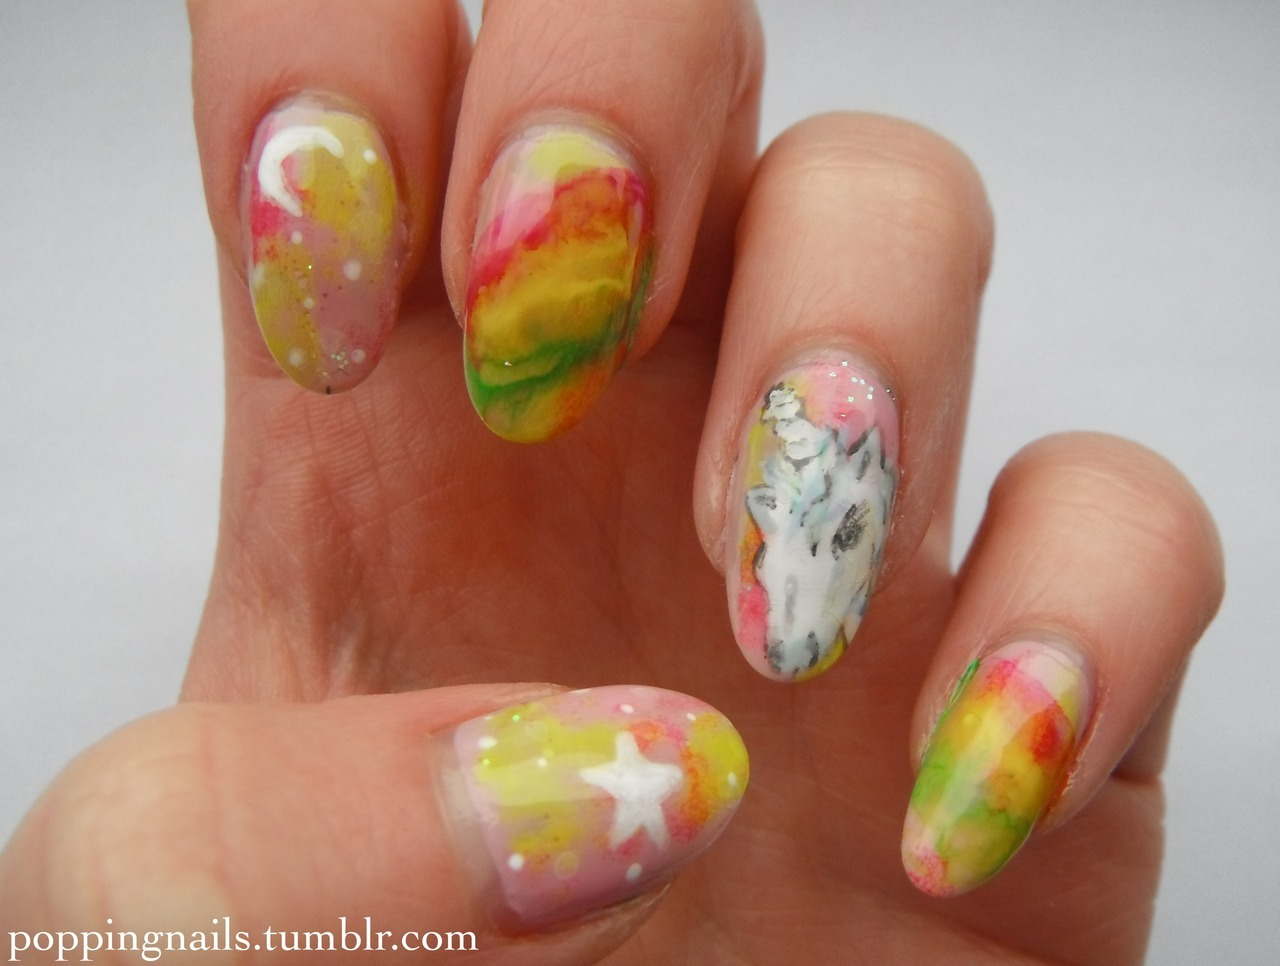 poppingnails:  Yay for unicorns! Check out my blog for my inspiration and what I used